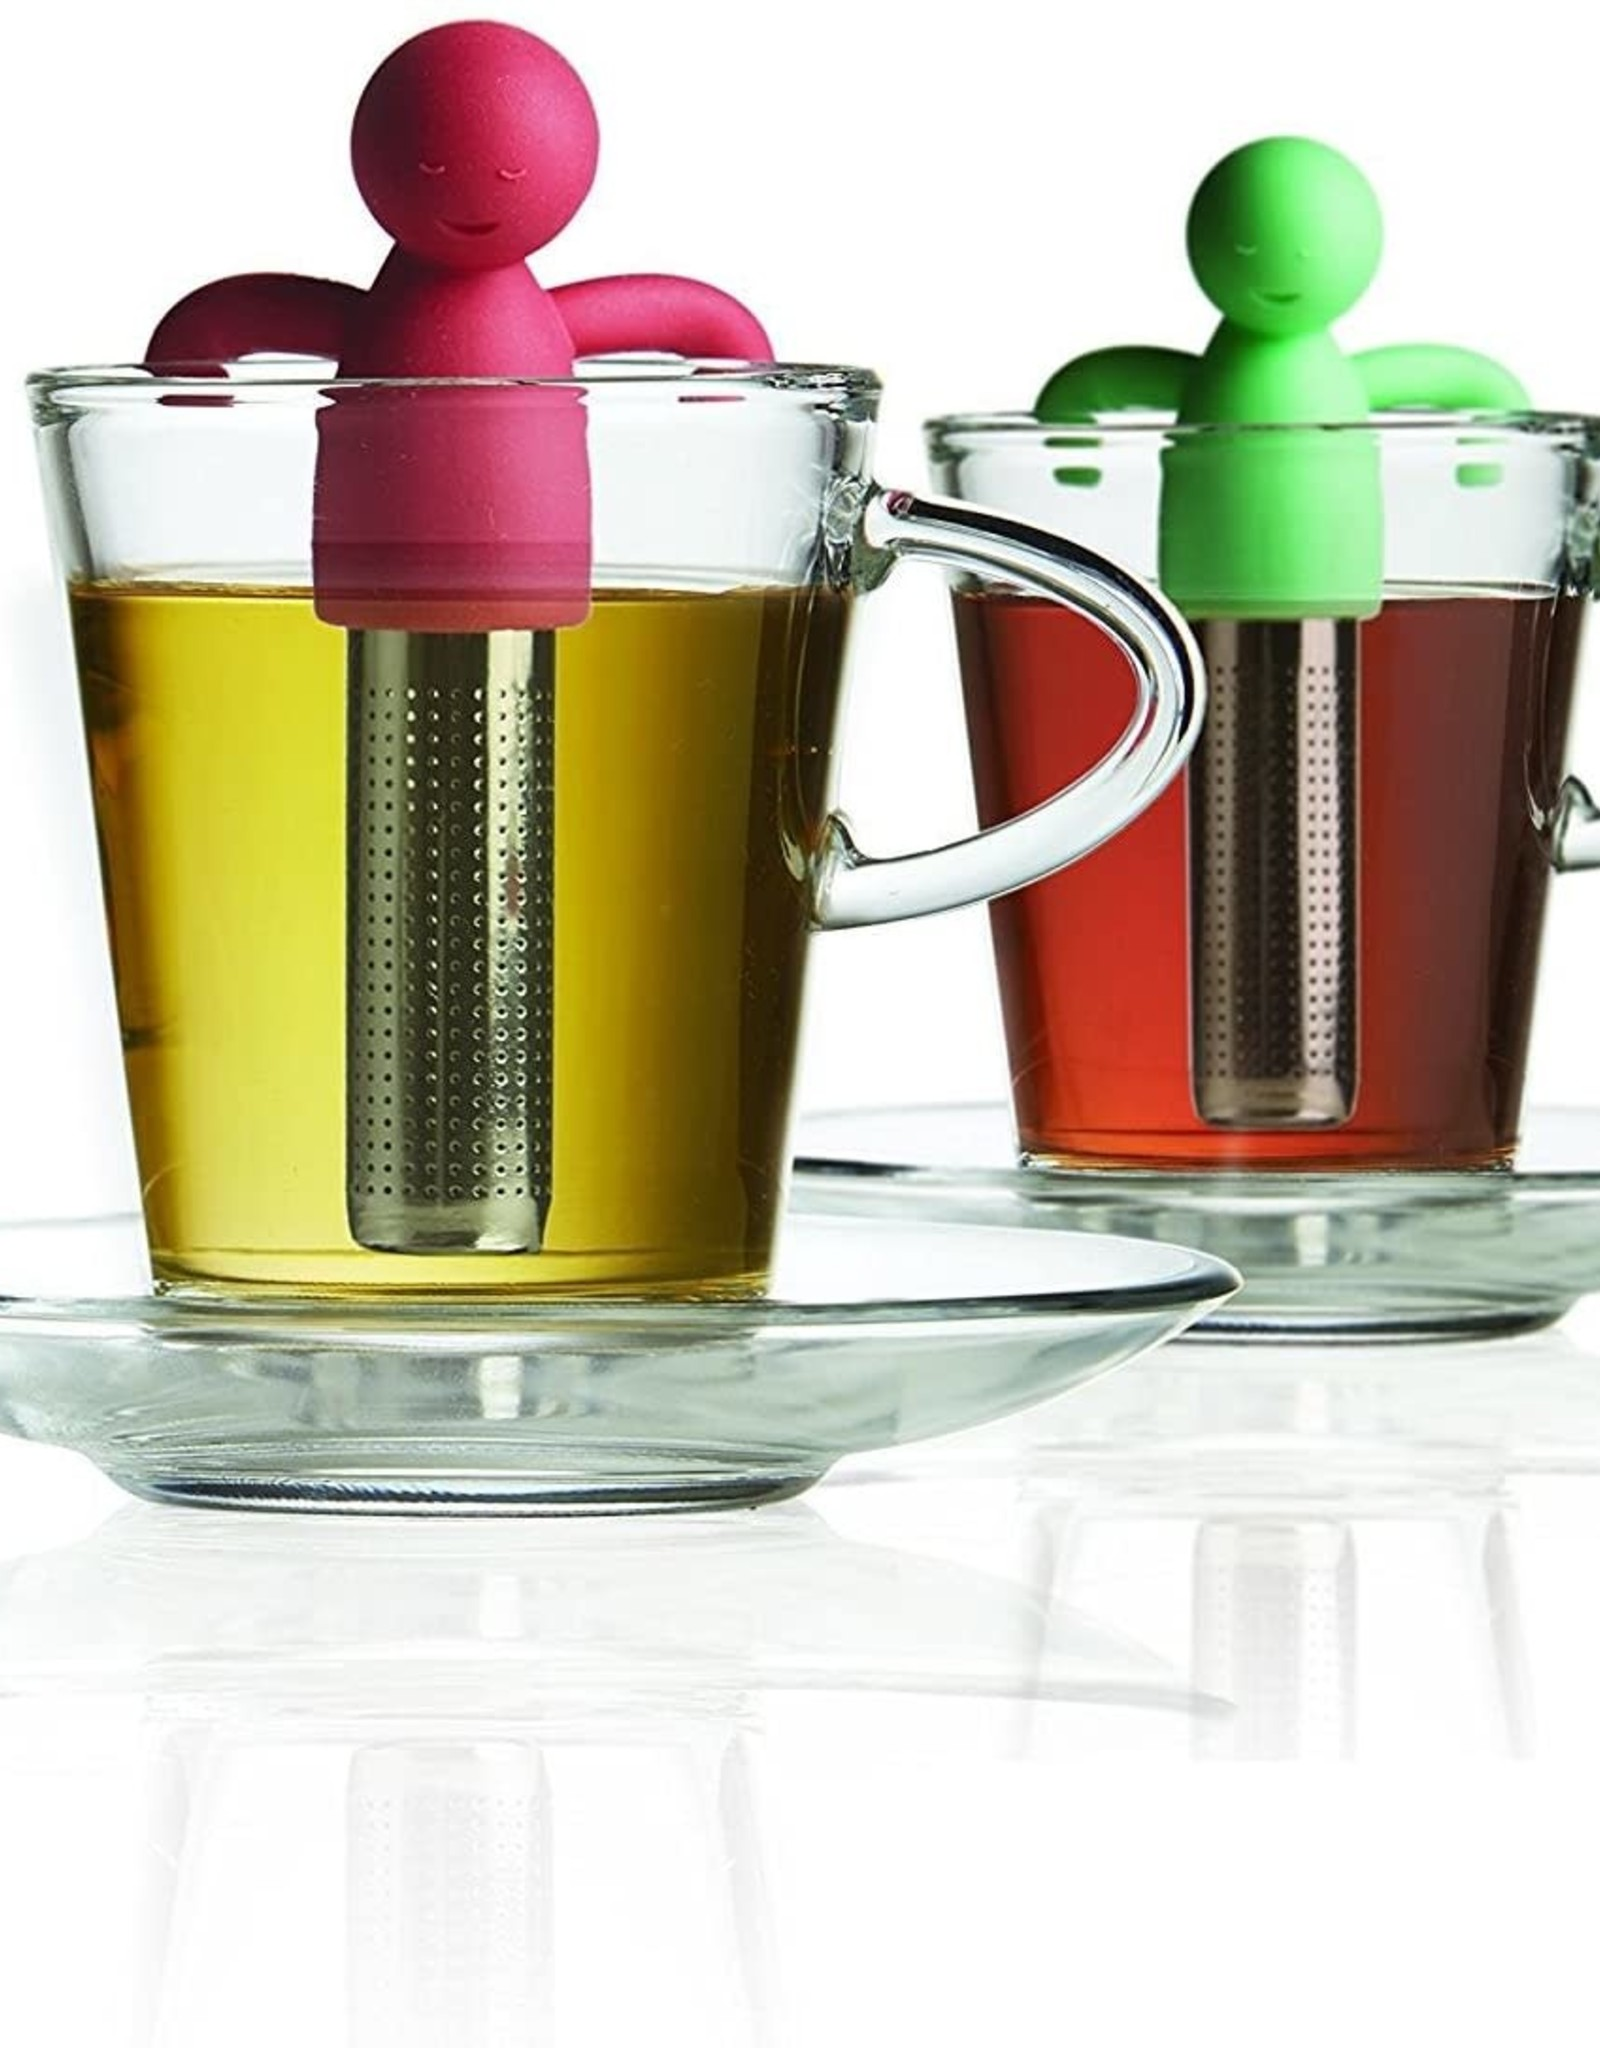 Brilliant - Tandem Tea Set for Two - 2 Glass Cups and Saucers, 2 Tea Infusers with Silicone Molded Smiley Top